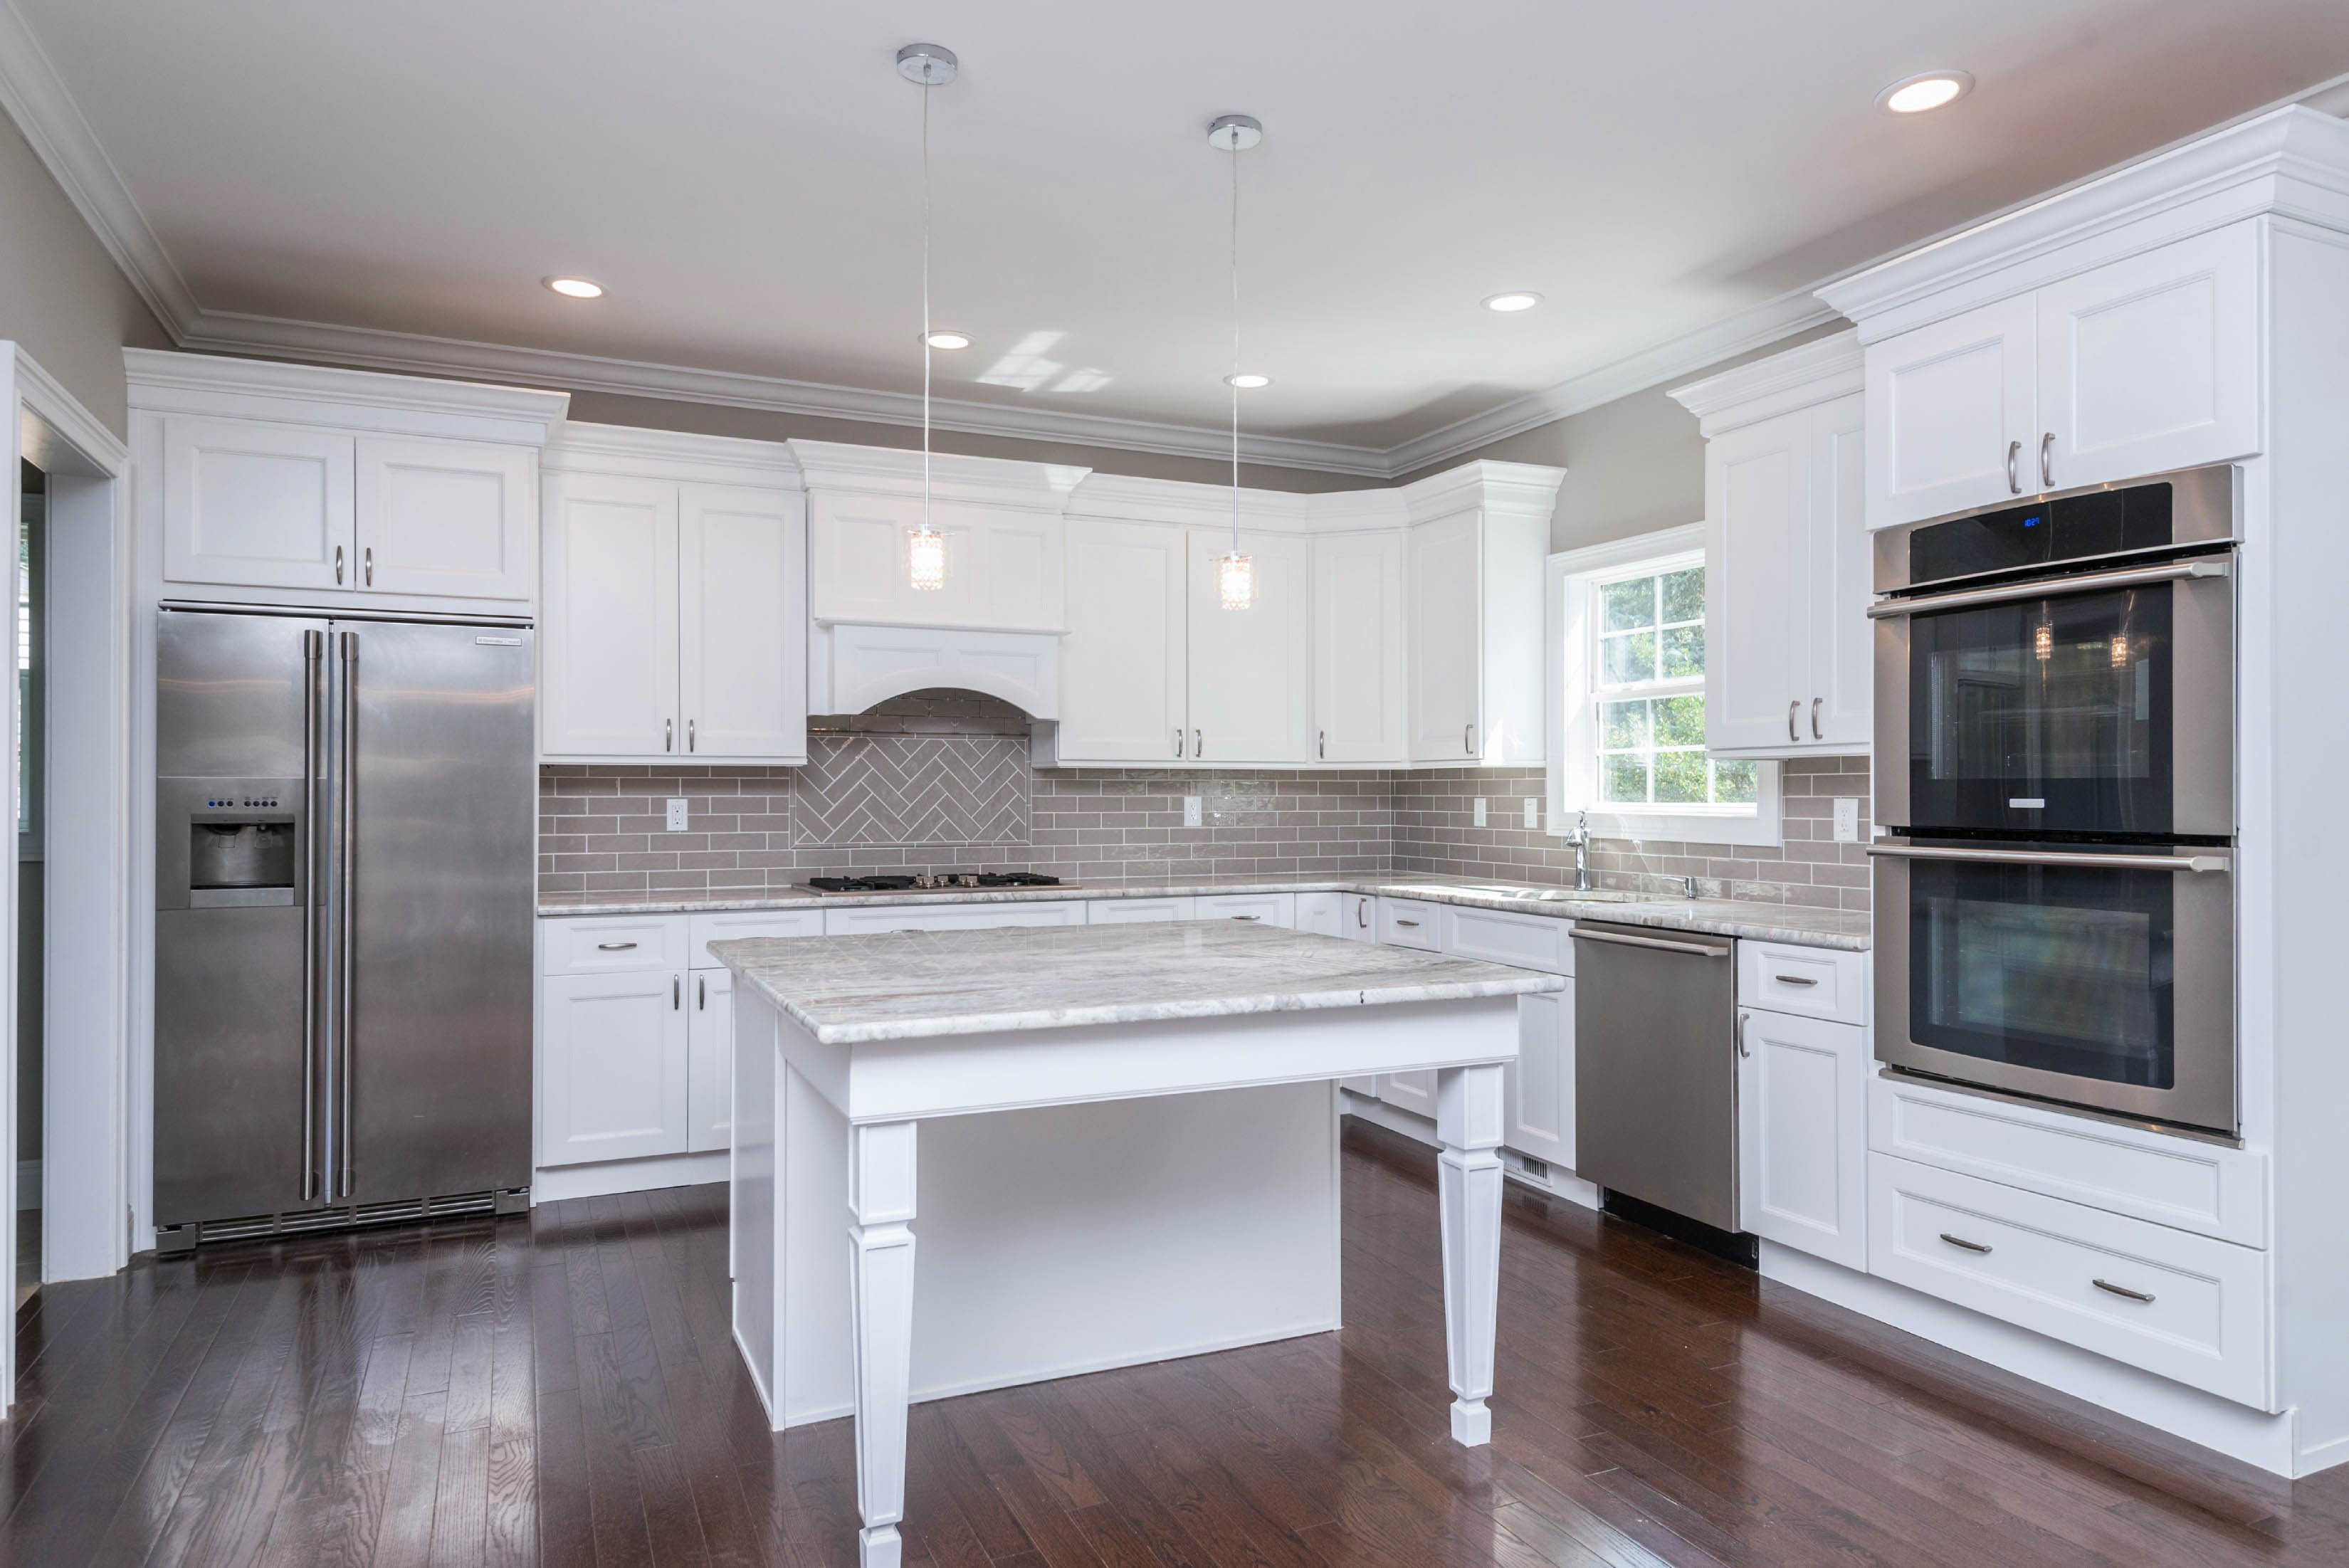 Kitchen Remodeling | East Northport, Smithtown & Stony Brook NY | Preferred Remodeling & Construction